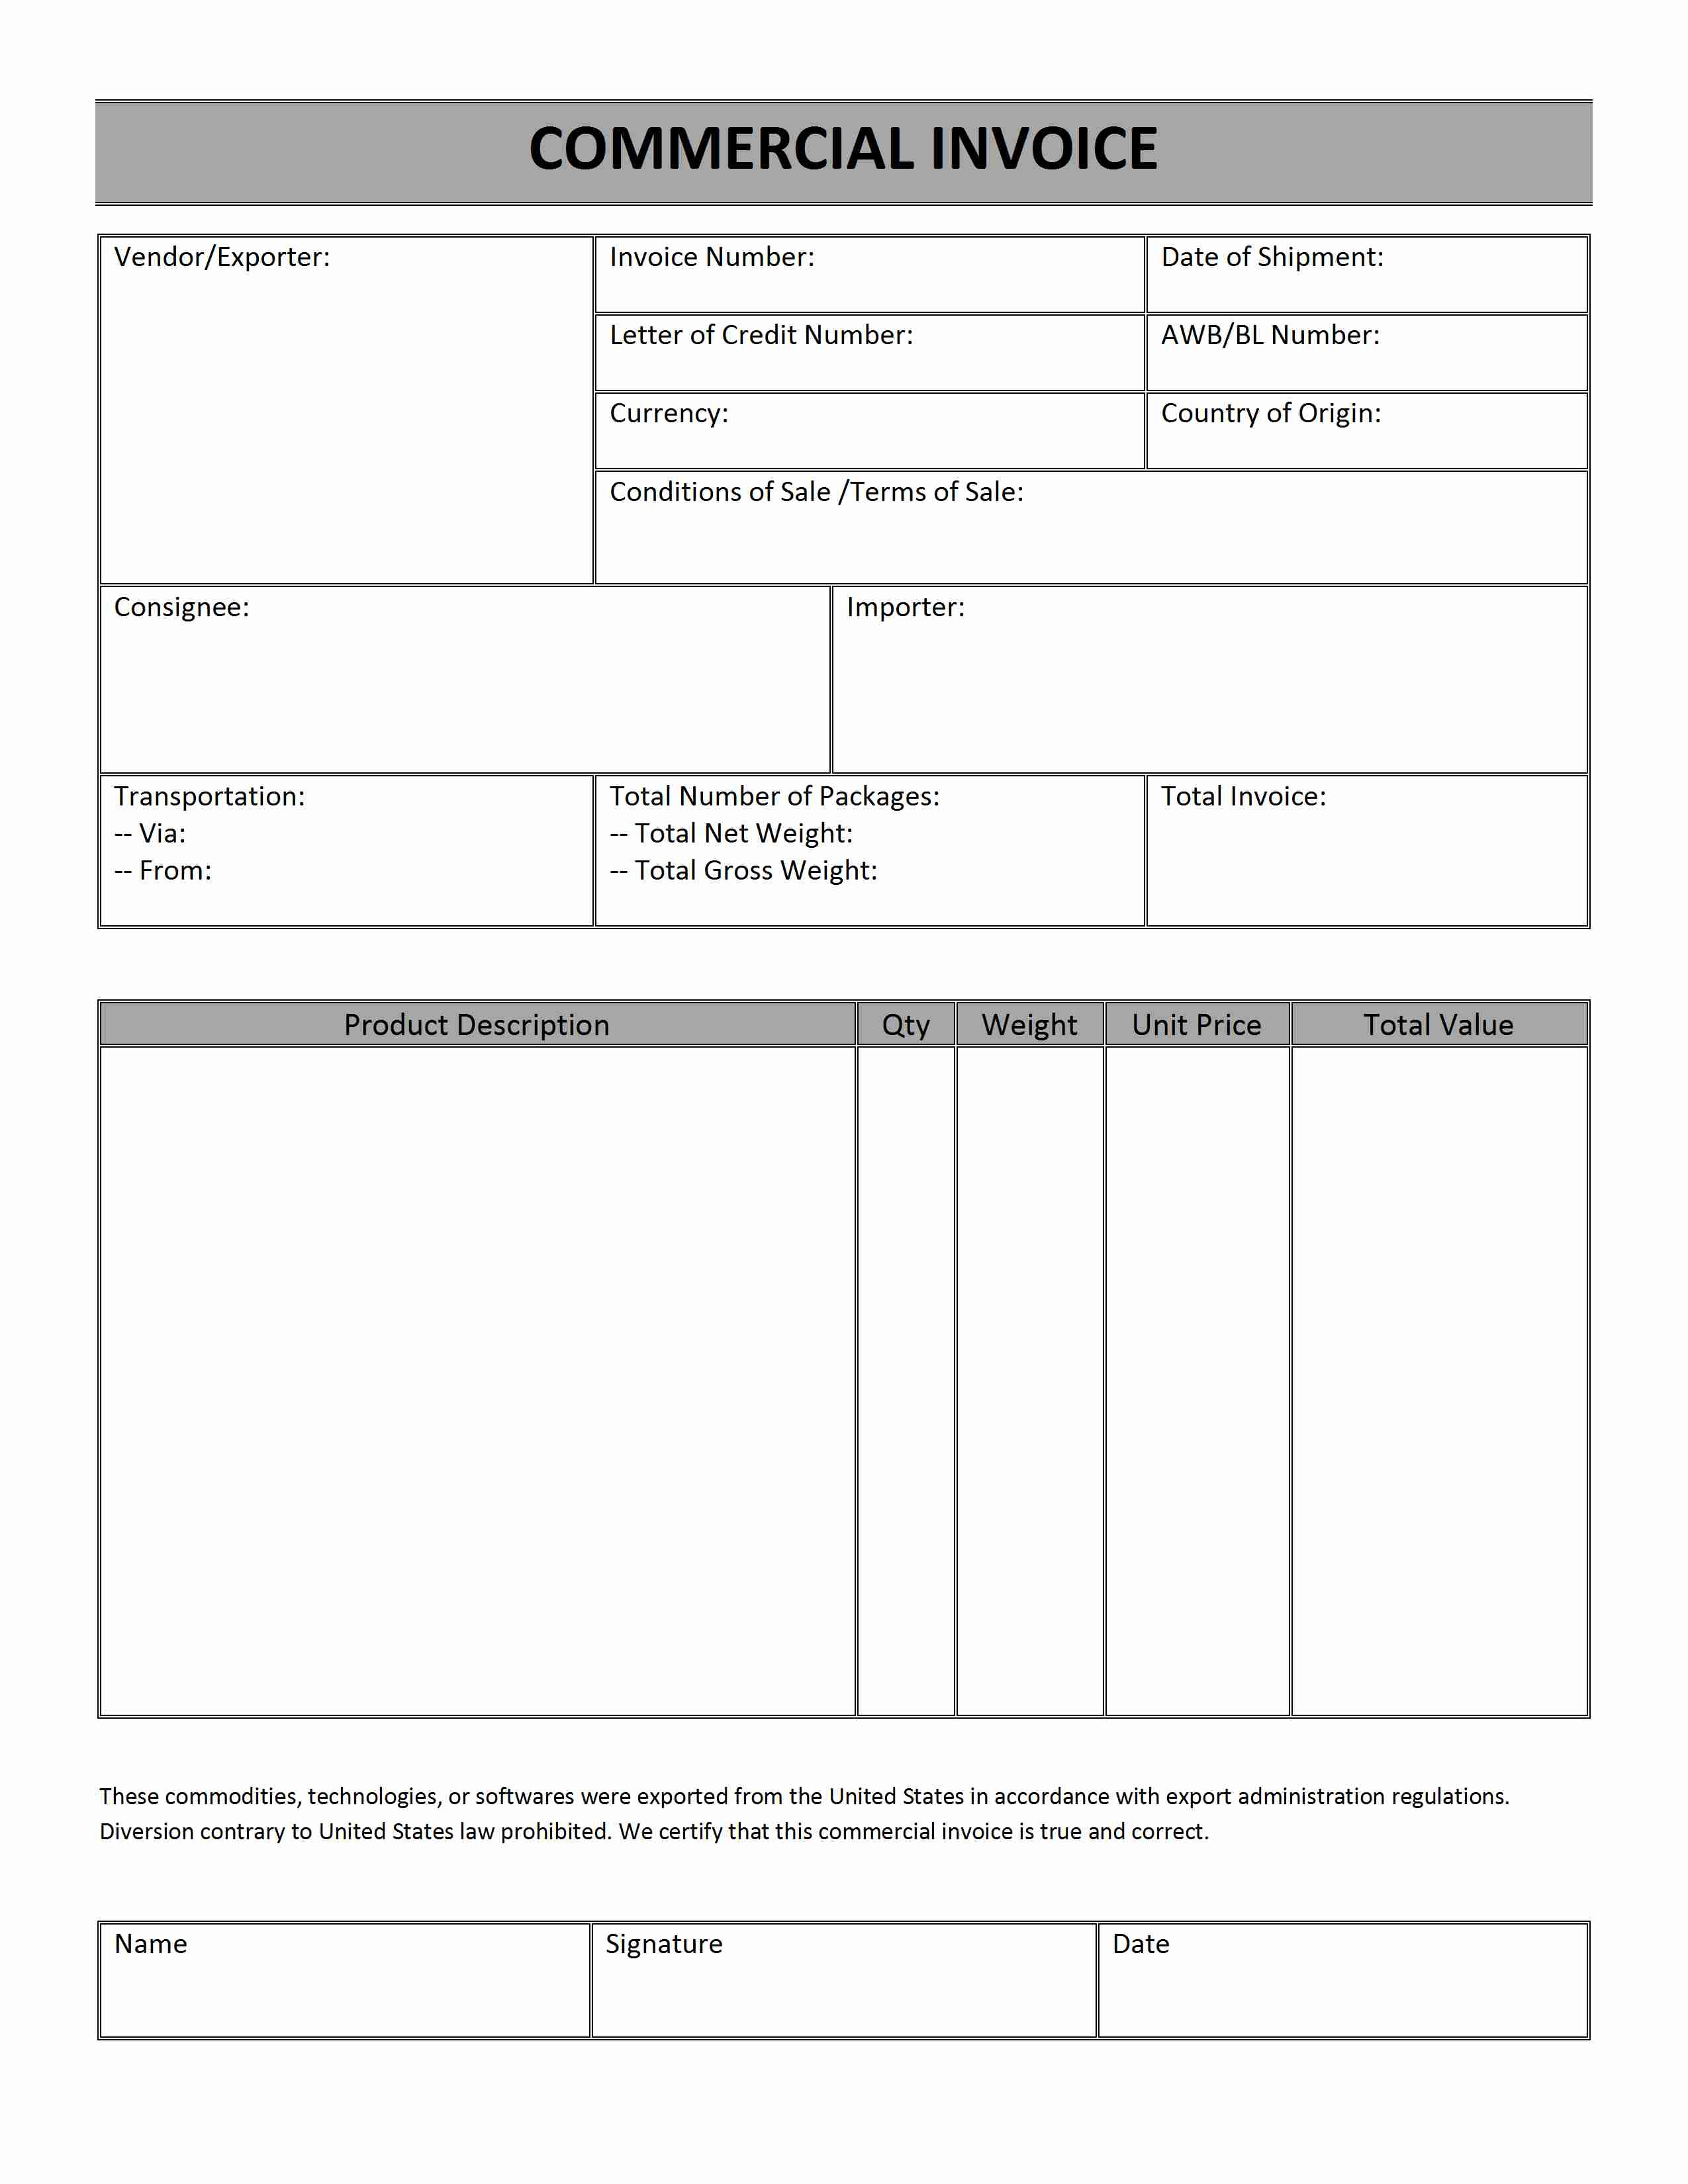 Pigbrotherus  Prepossessing Printable Sales Invoice Simple Invoice Form Free Invoice  With Magnificent Printable Receipt Free  Free Printable Raffle Tickets  Receipt   Printable With Comely Word Invoice Templates Also Invoice Automation In Addition How To Find Invoice Price And How To Write A Invoice As Well As Make Invoice Online Additionally Auto Invoice Prices From Happytomco With Pigbrotherus  Magnificent Printable Sales Invoice Simple Invoice Form Free Invoice  With Comely Printable Receipt Free  Free Printable Raffle Tickets  Receipt   Printable And Prepossessing Word Invoice Templates Also Invoice Automation In Addition How To Find Invoice Price From Happytomco